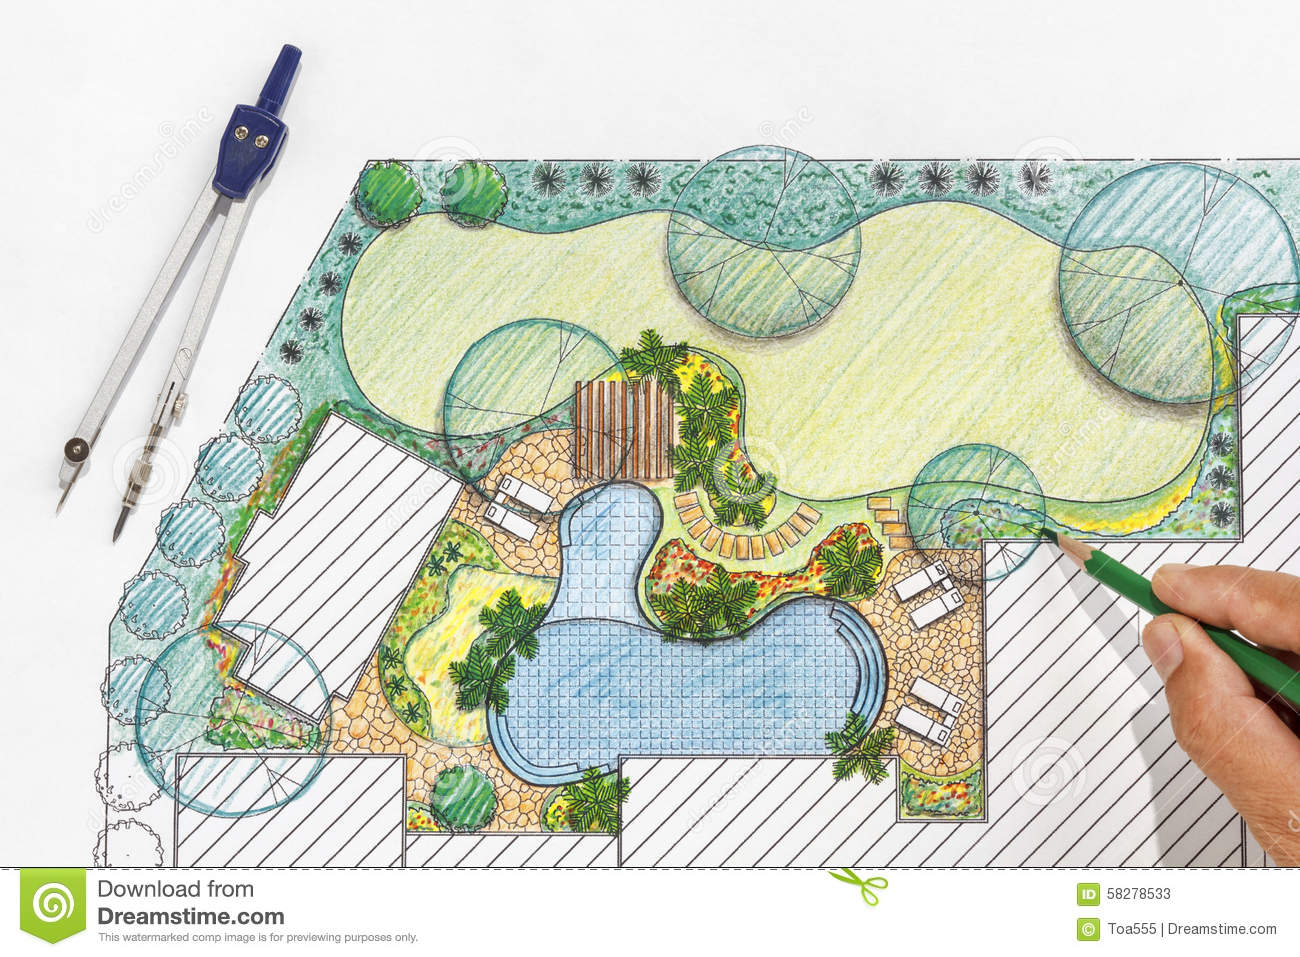 Landscape architect design backyard plan for villa stock for Garden landscape drawing